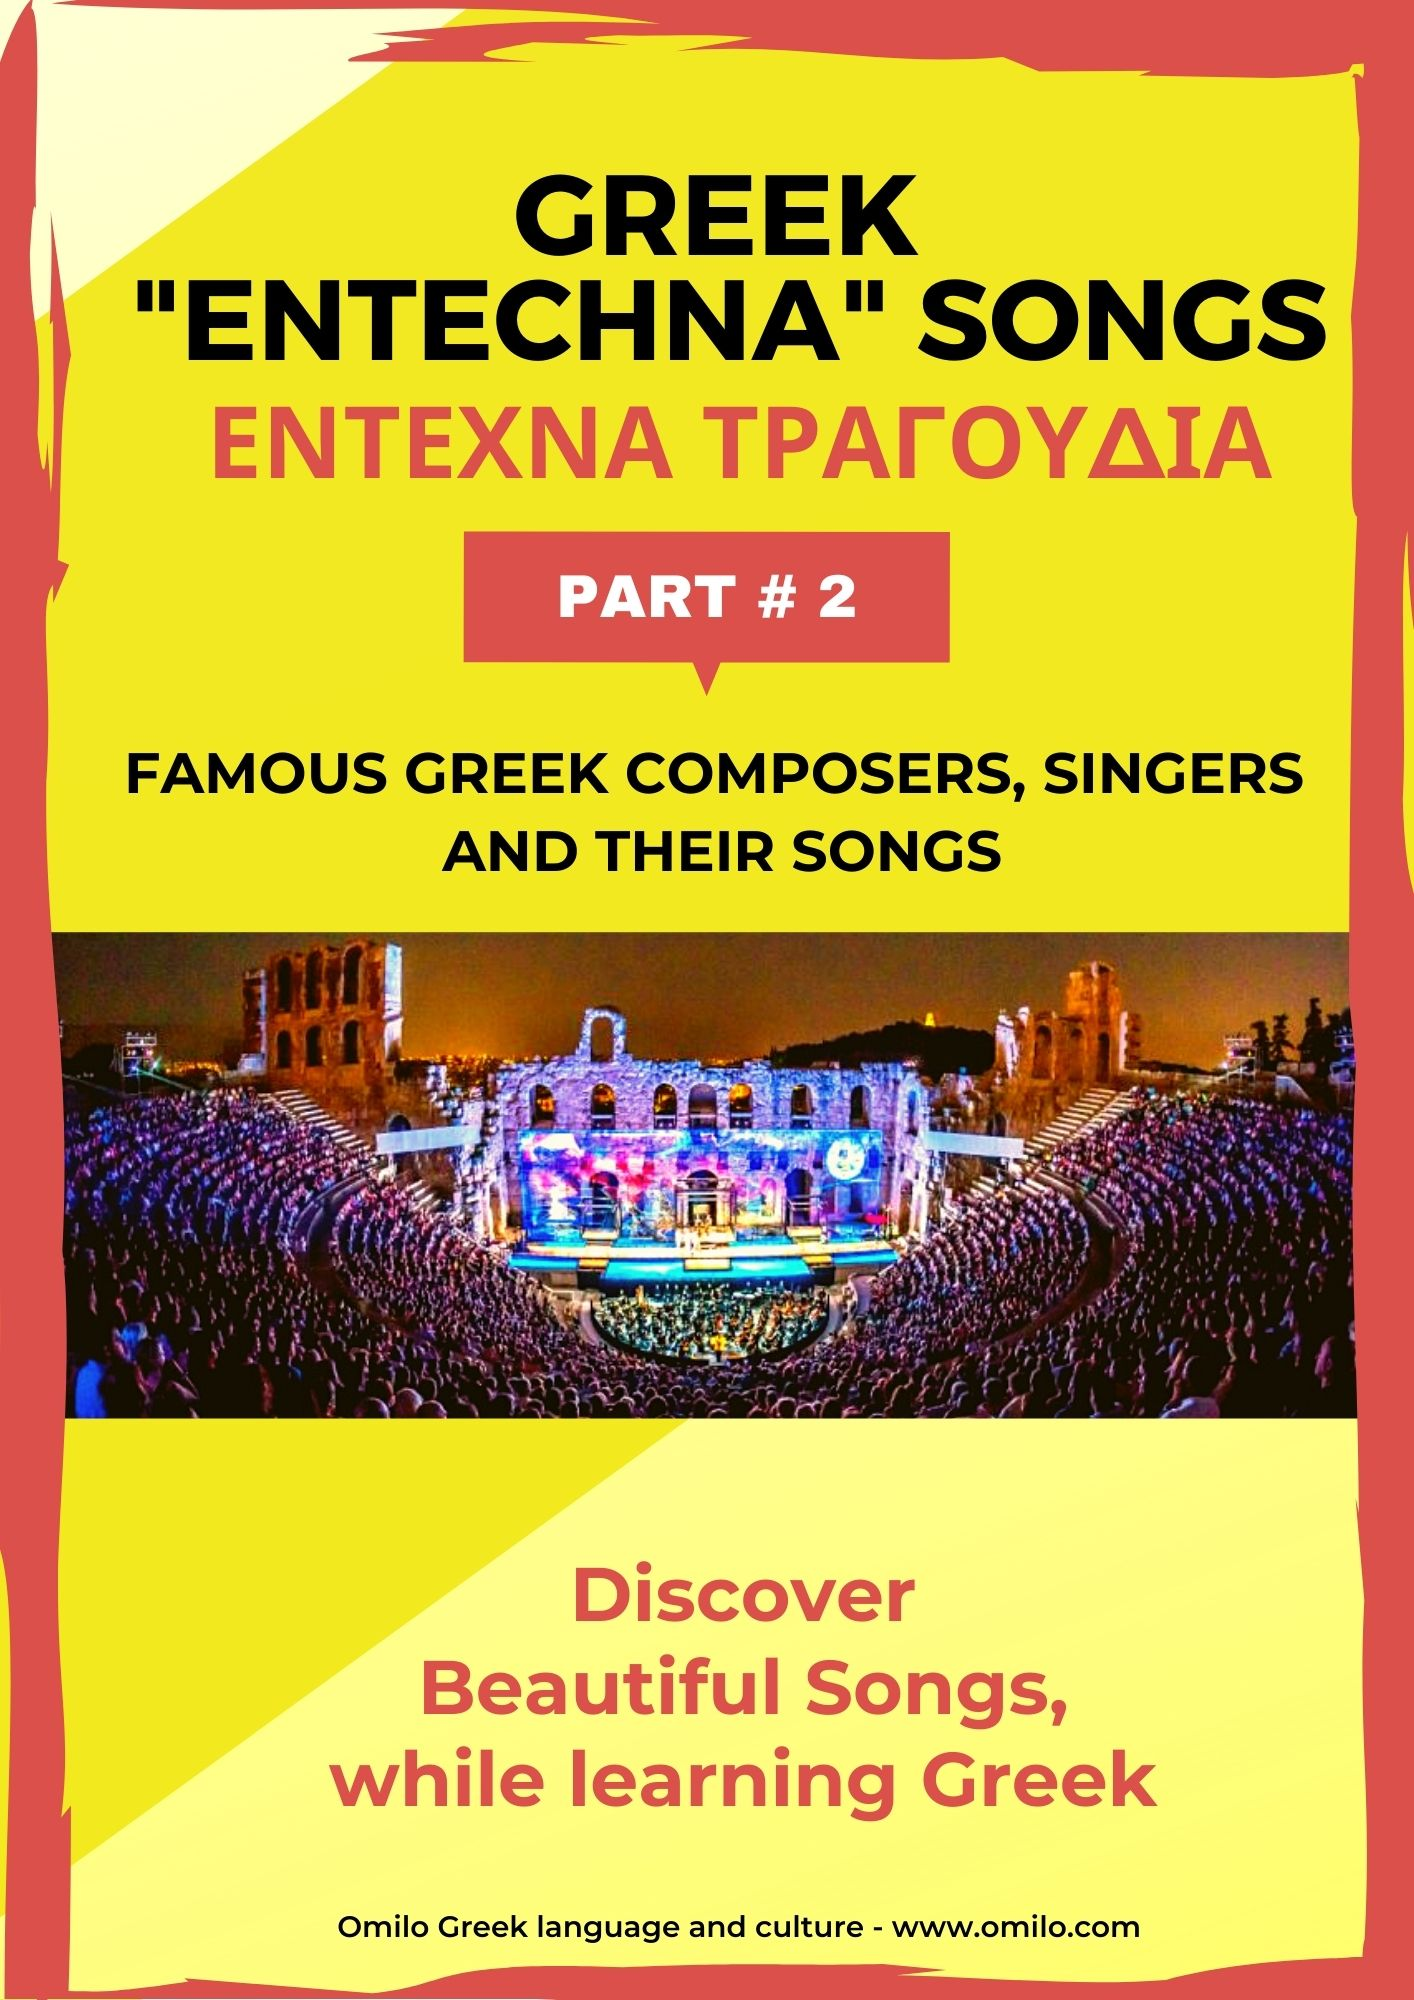 Greek Entechna Songs